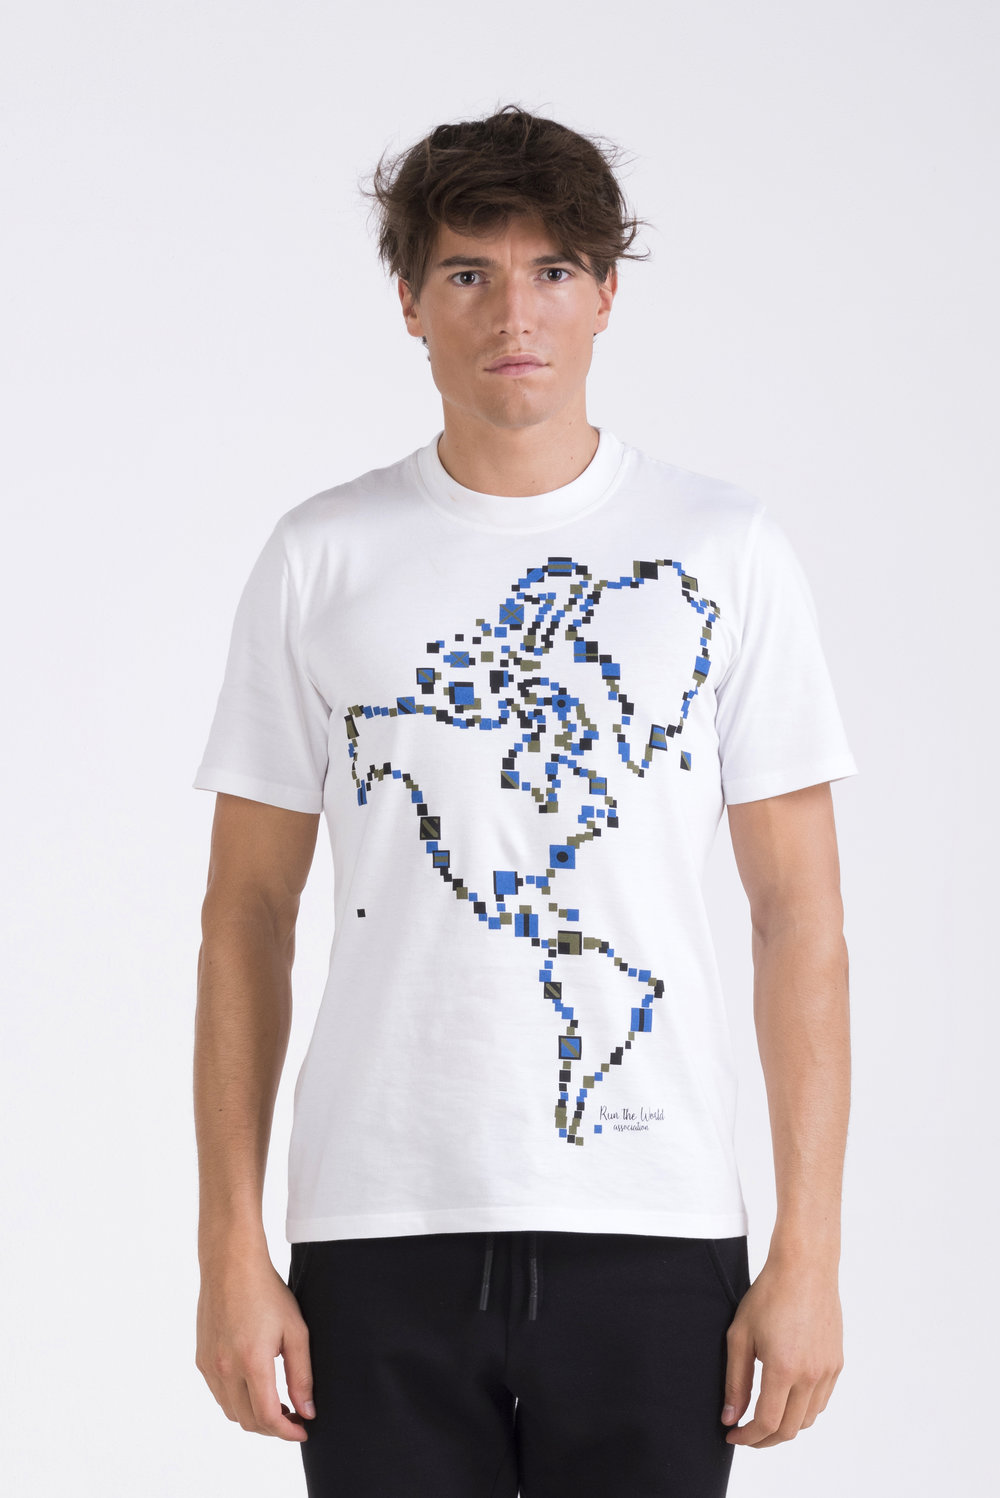 oneculture x Run The World Association tee 2.jpg